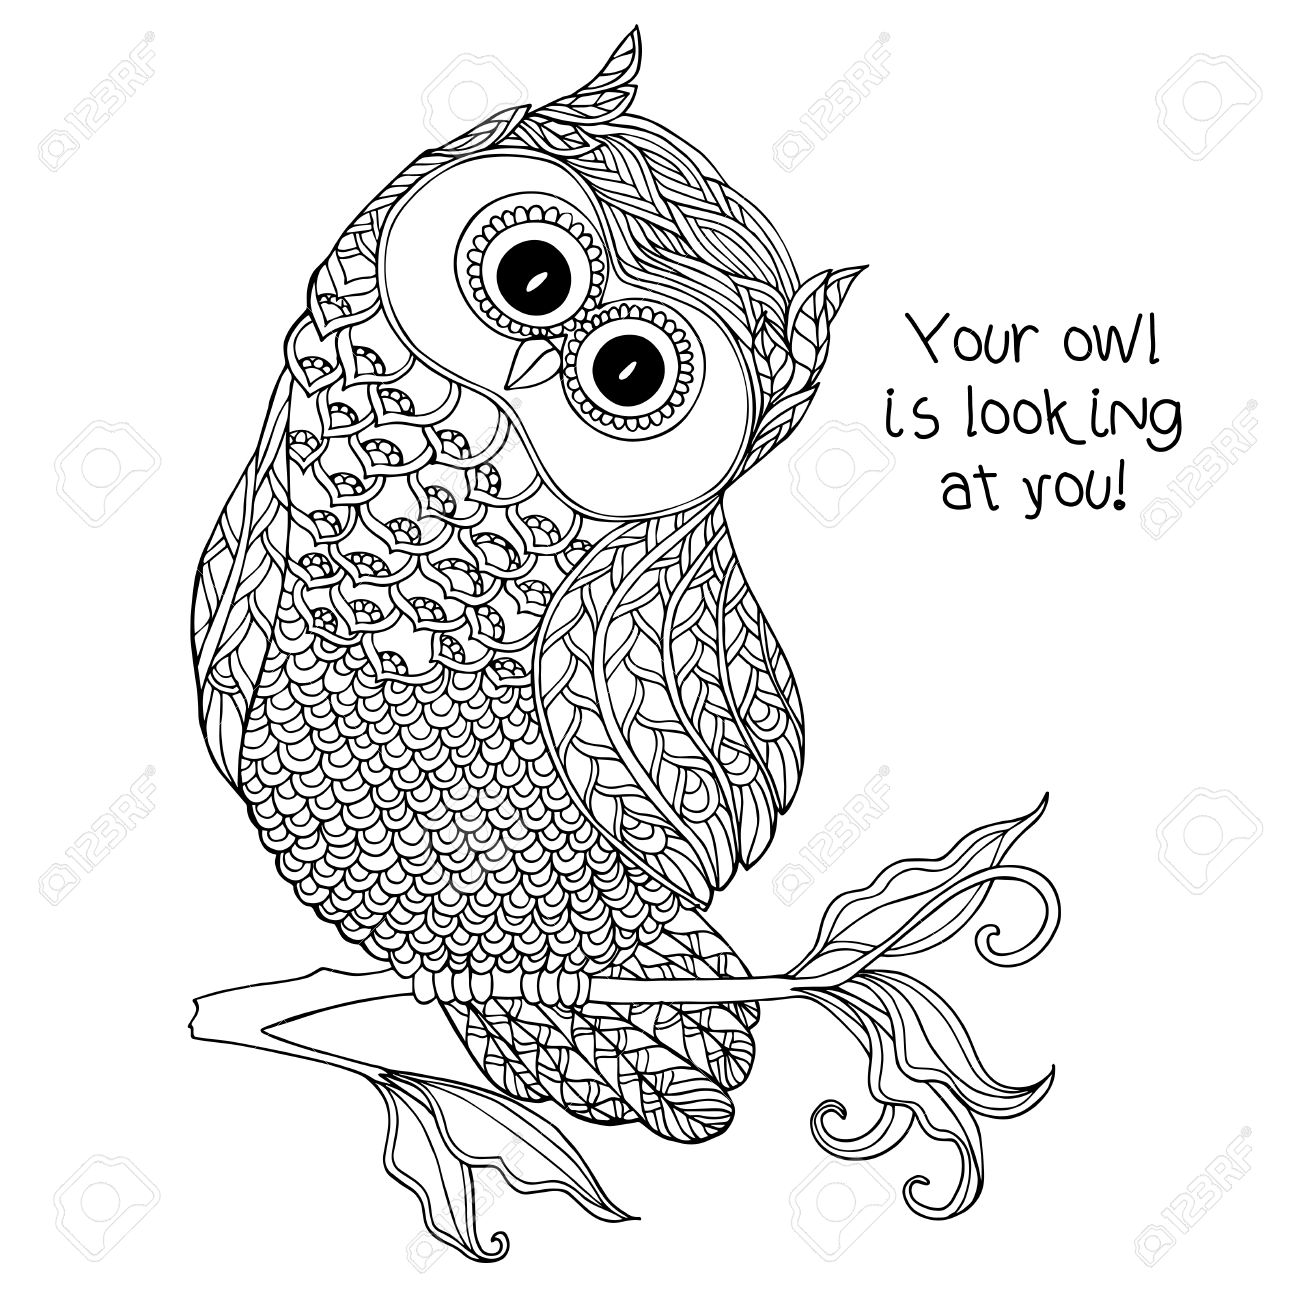 Easy Cute Owl Drawing